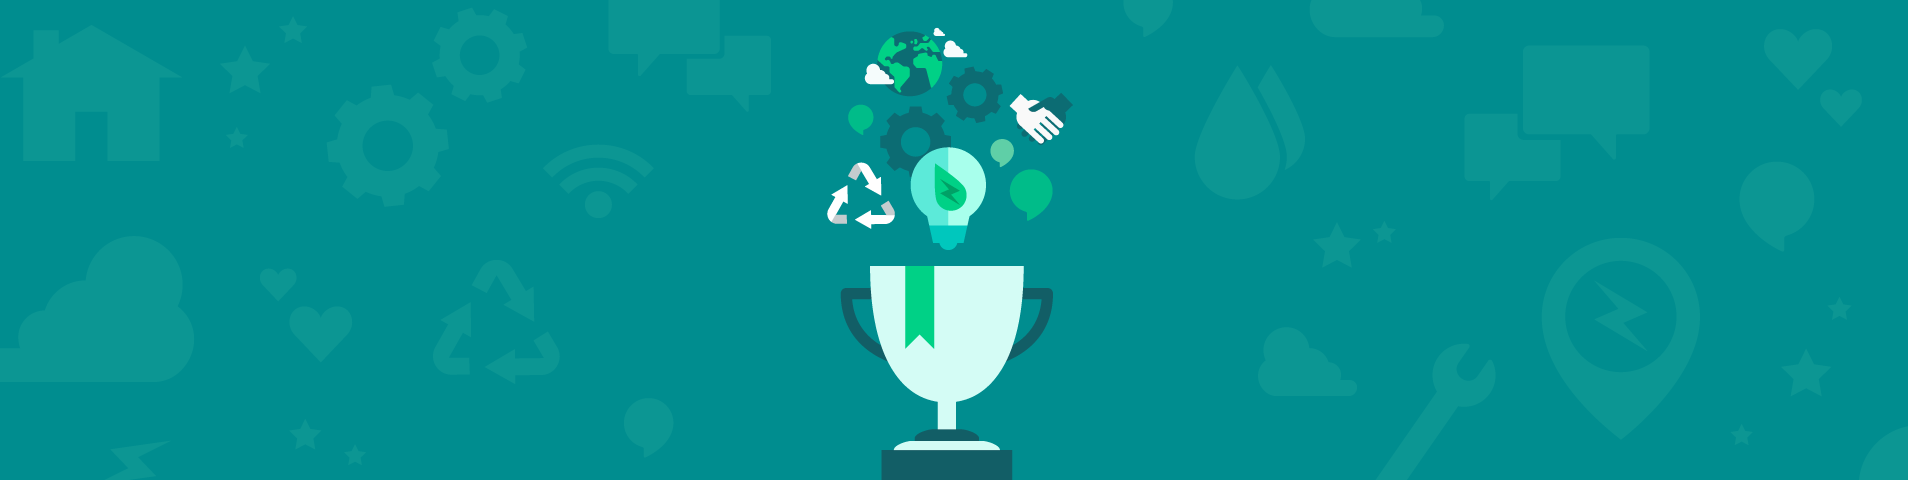 Announcing the Winners of the Alexa Skills Challenge: Tech